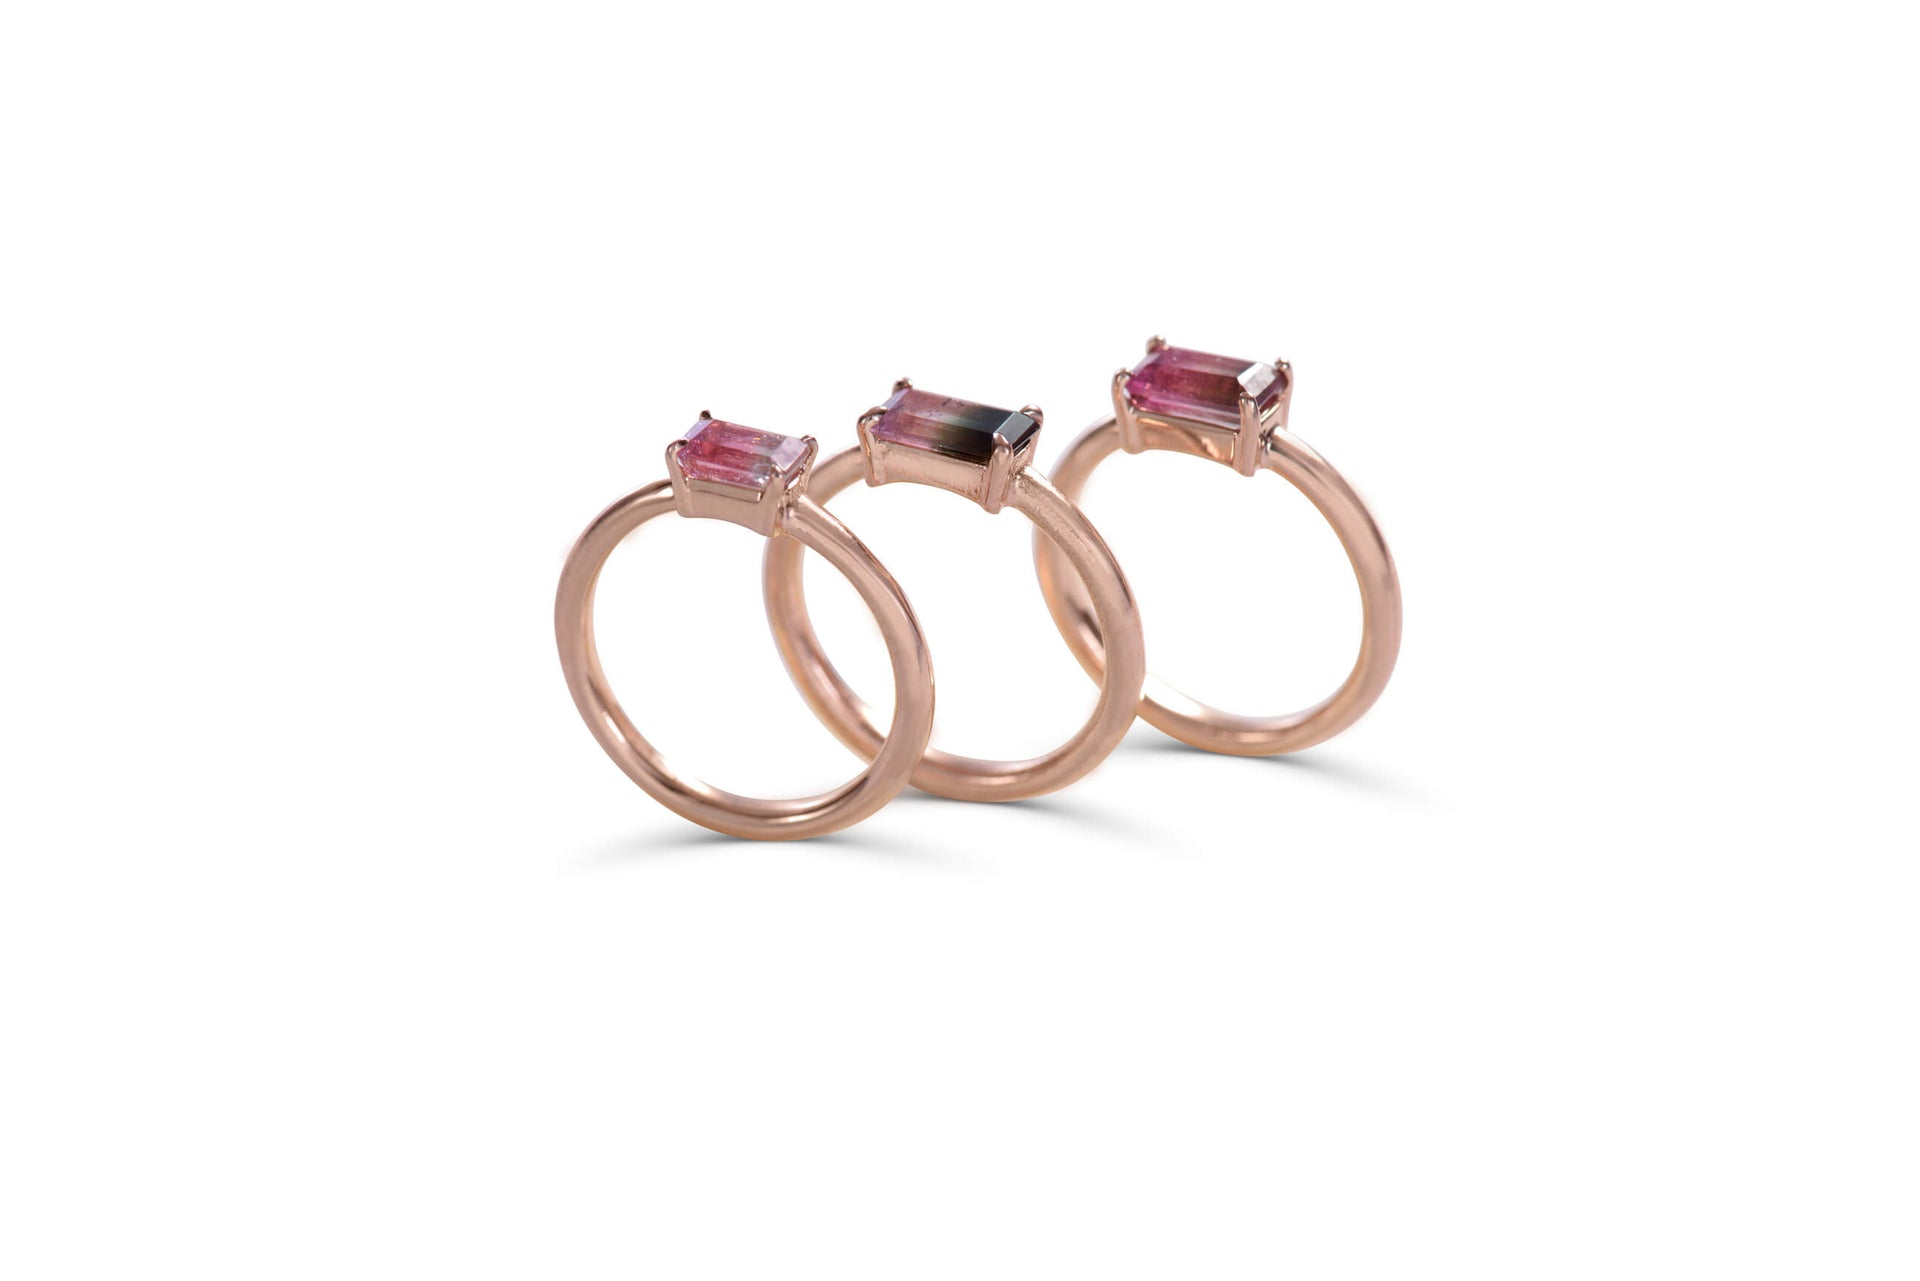 14 KT Rose Gold rings with bicolor tourmaline by KarenAsh New York